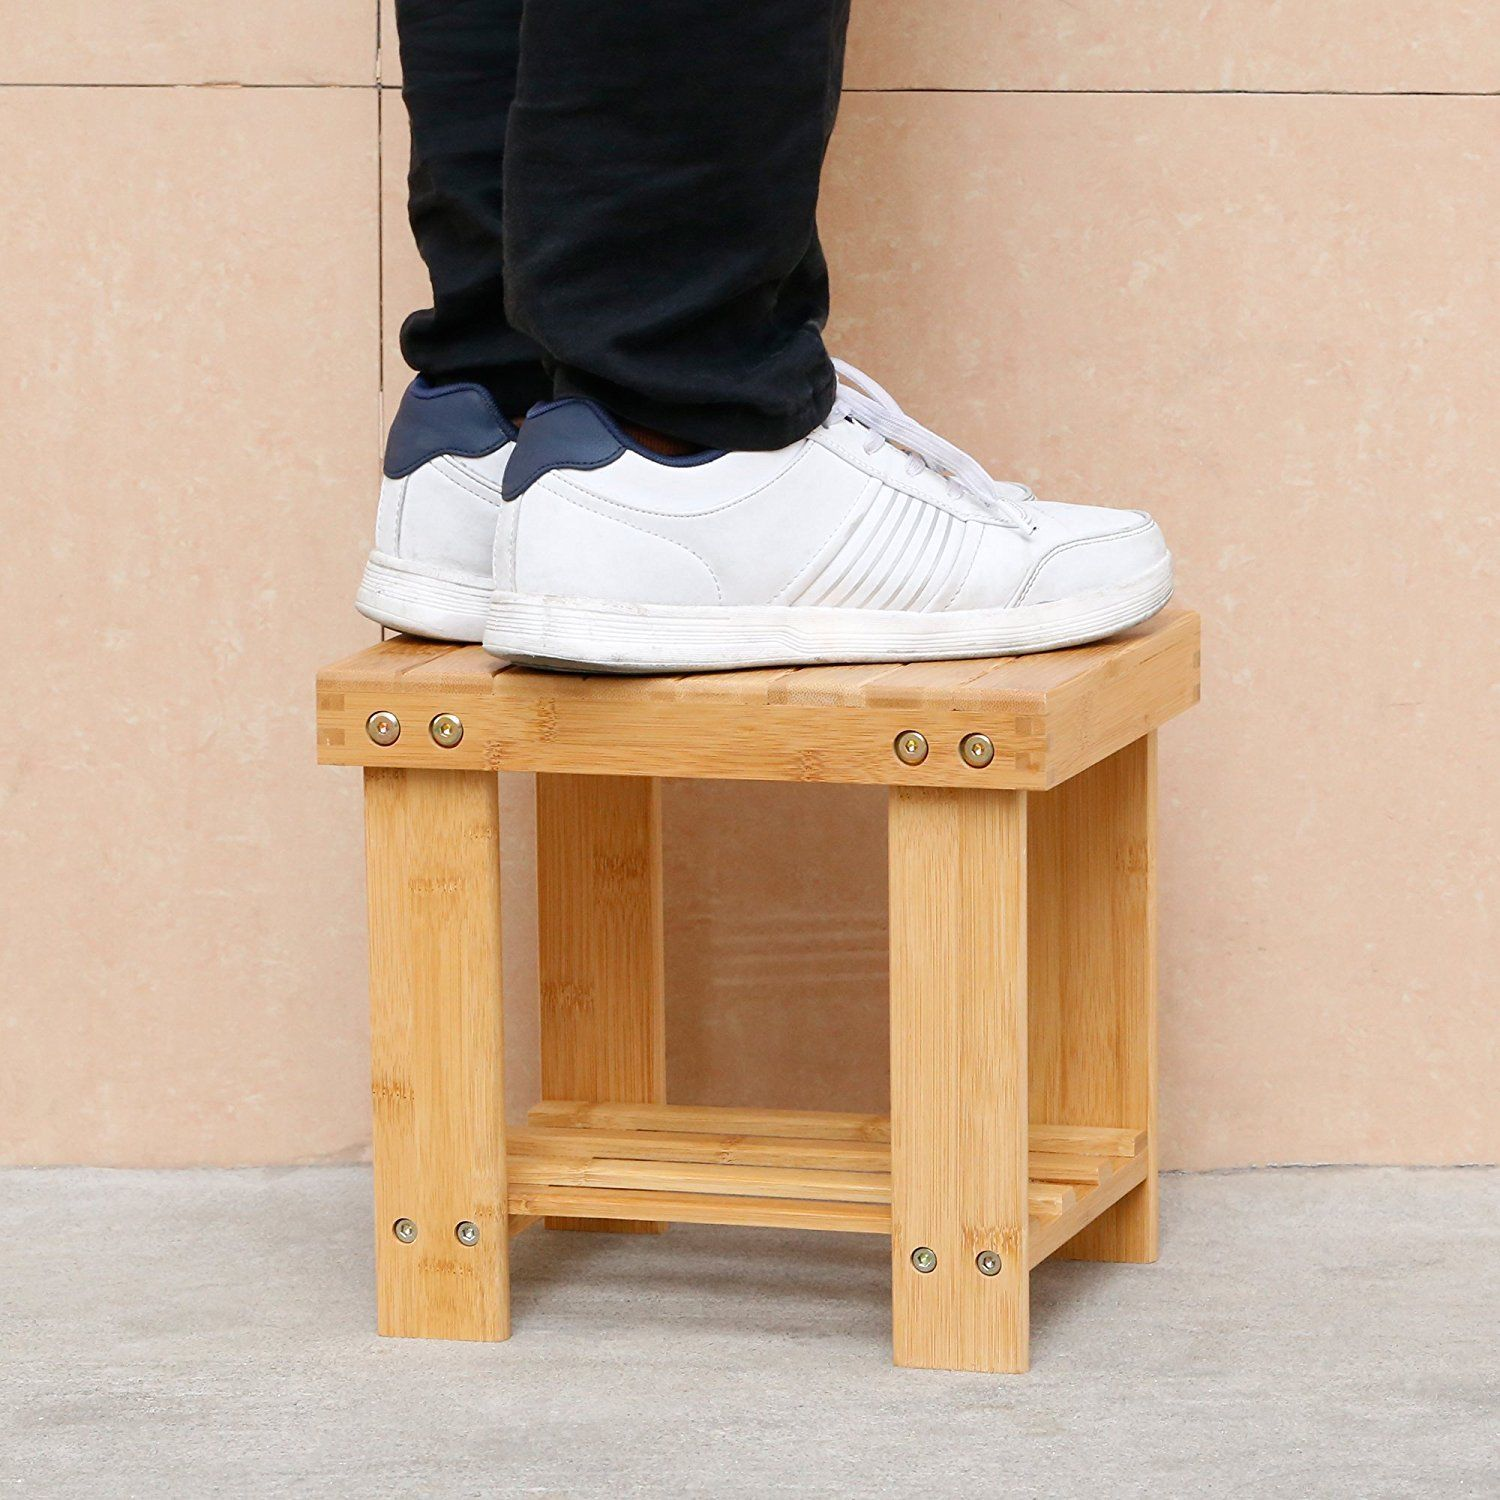 Ktaxon Multfunctional Kids Bamboo Stepping Stool Bench Chair With Storage Shelf,Wood Color